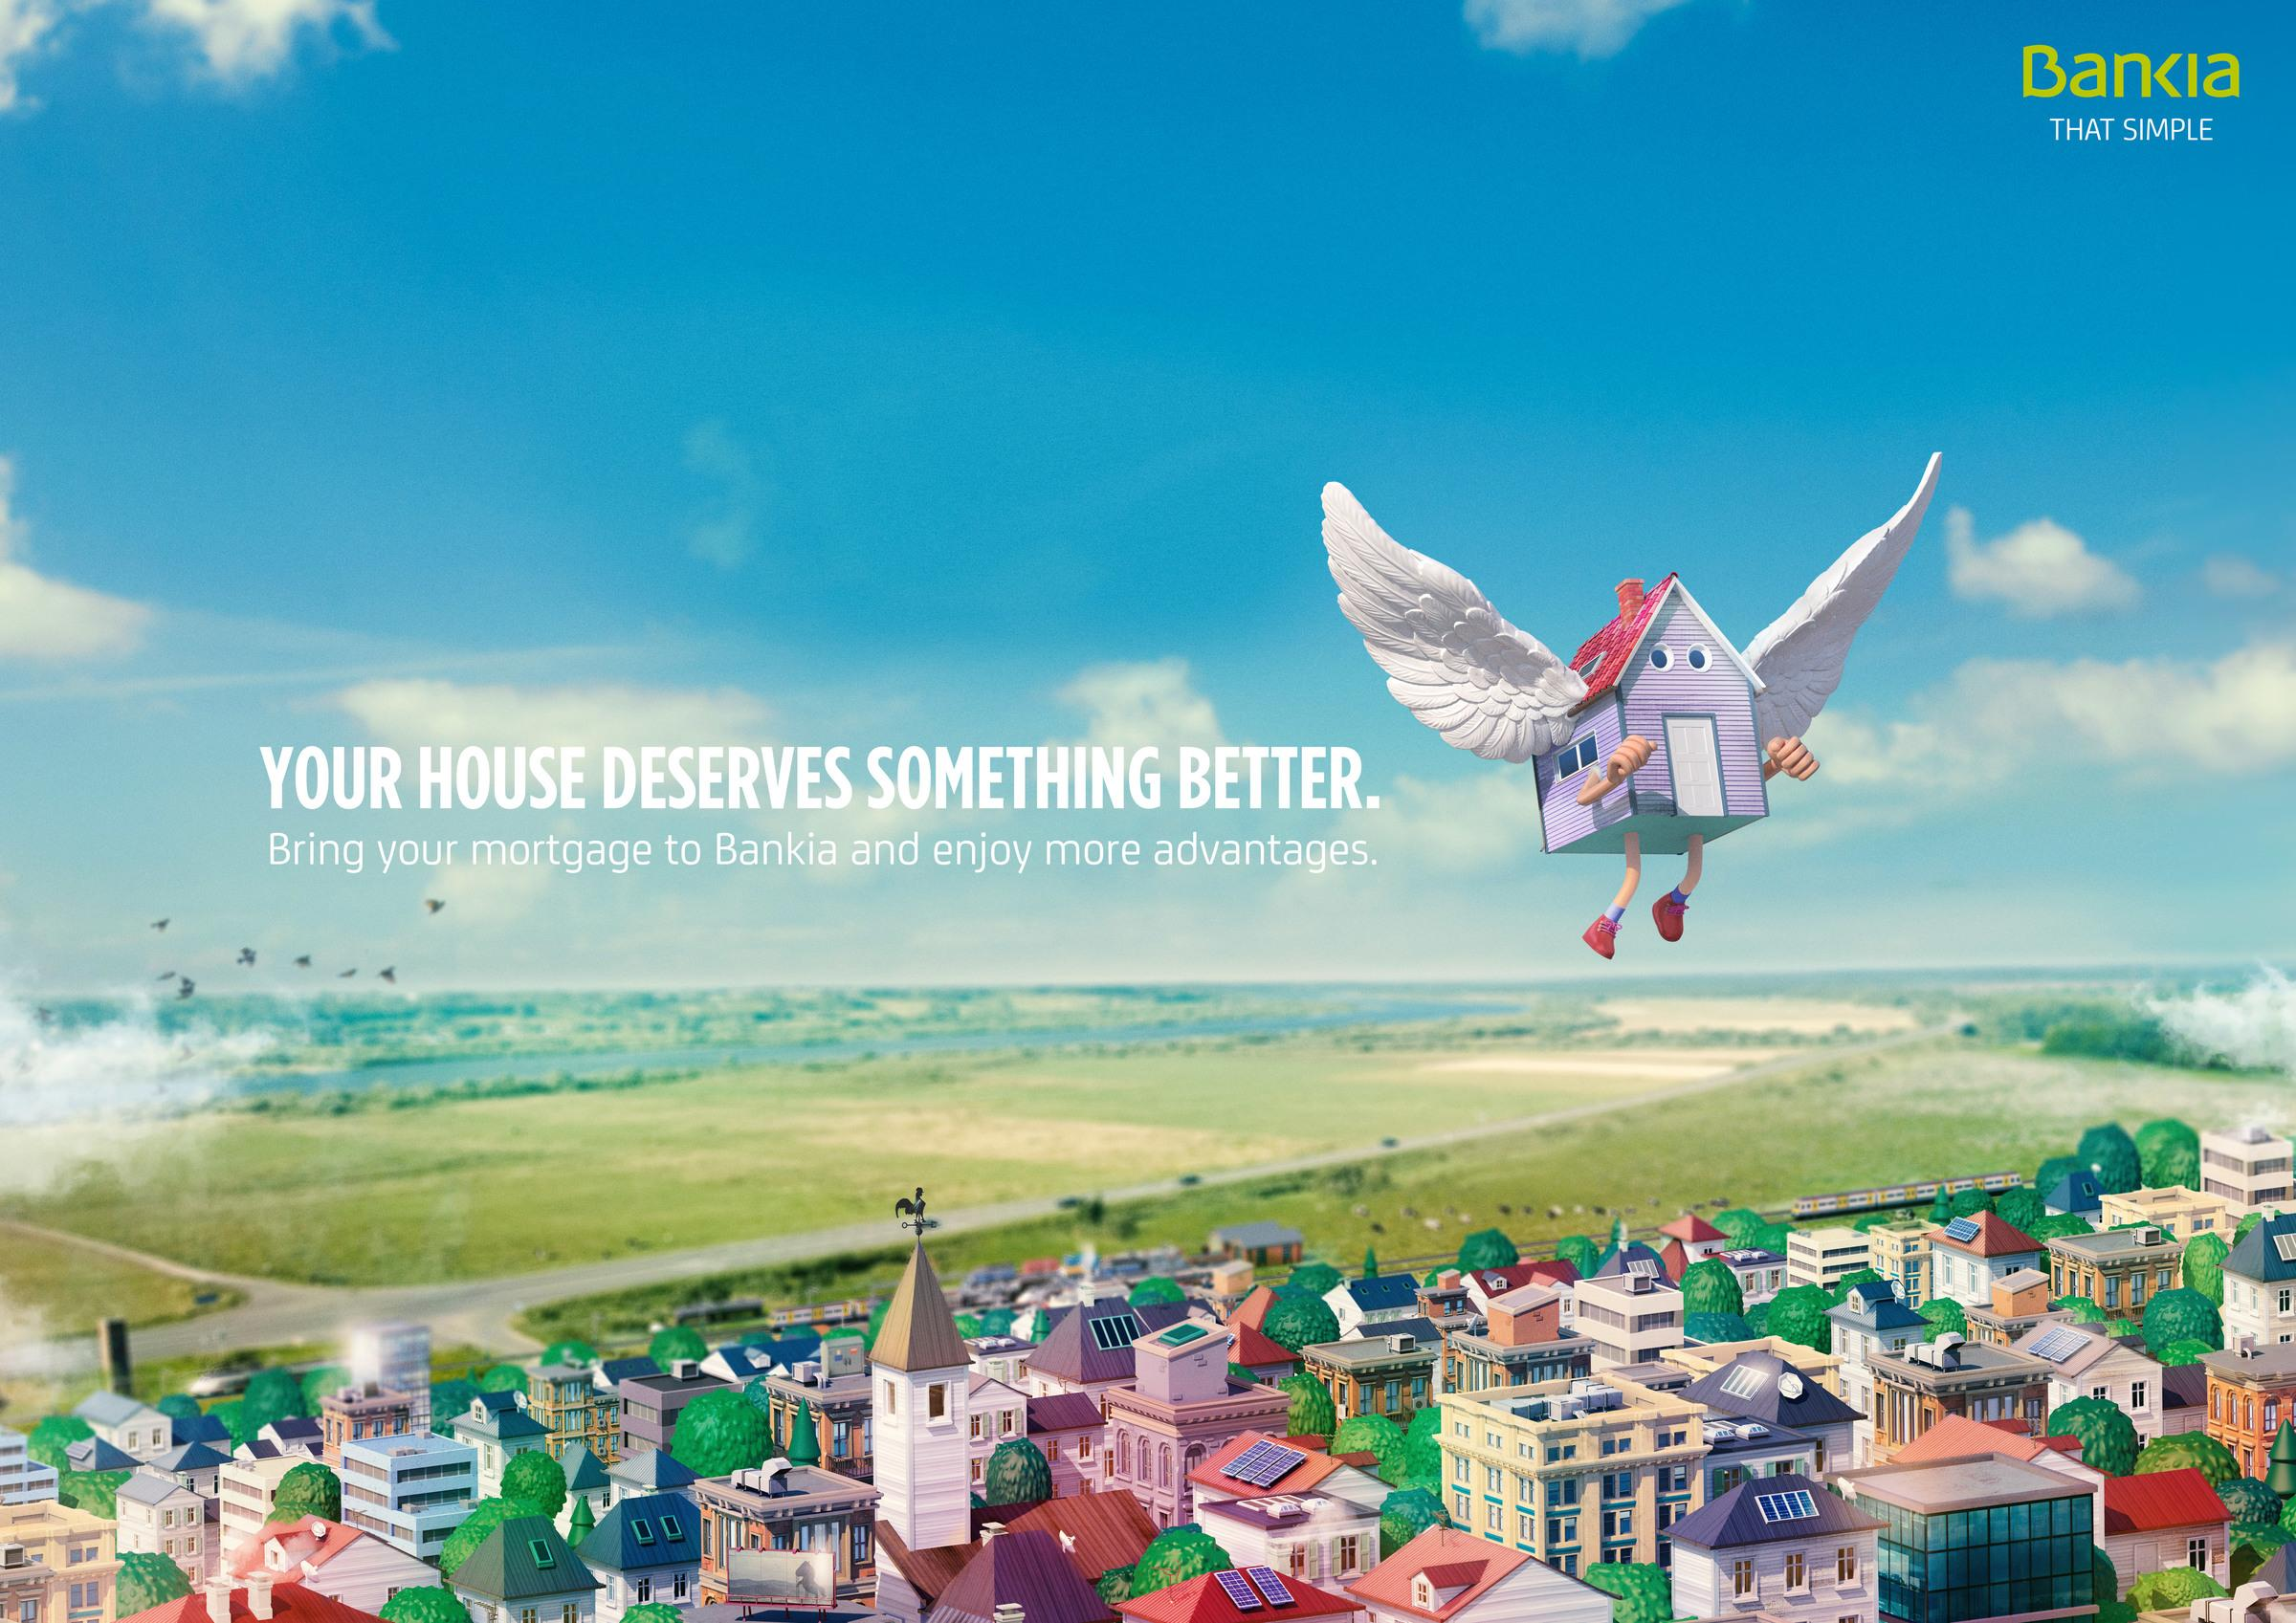 Bankia: Flying houses